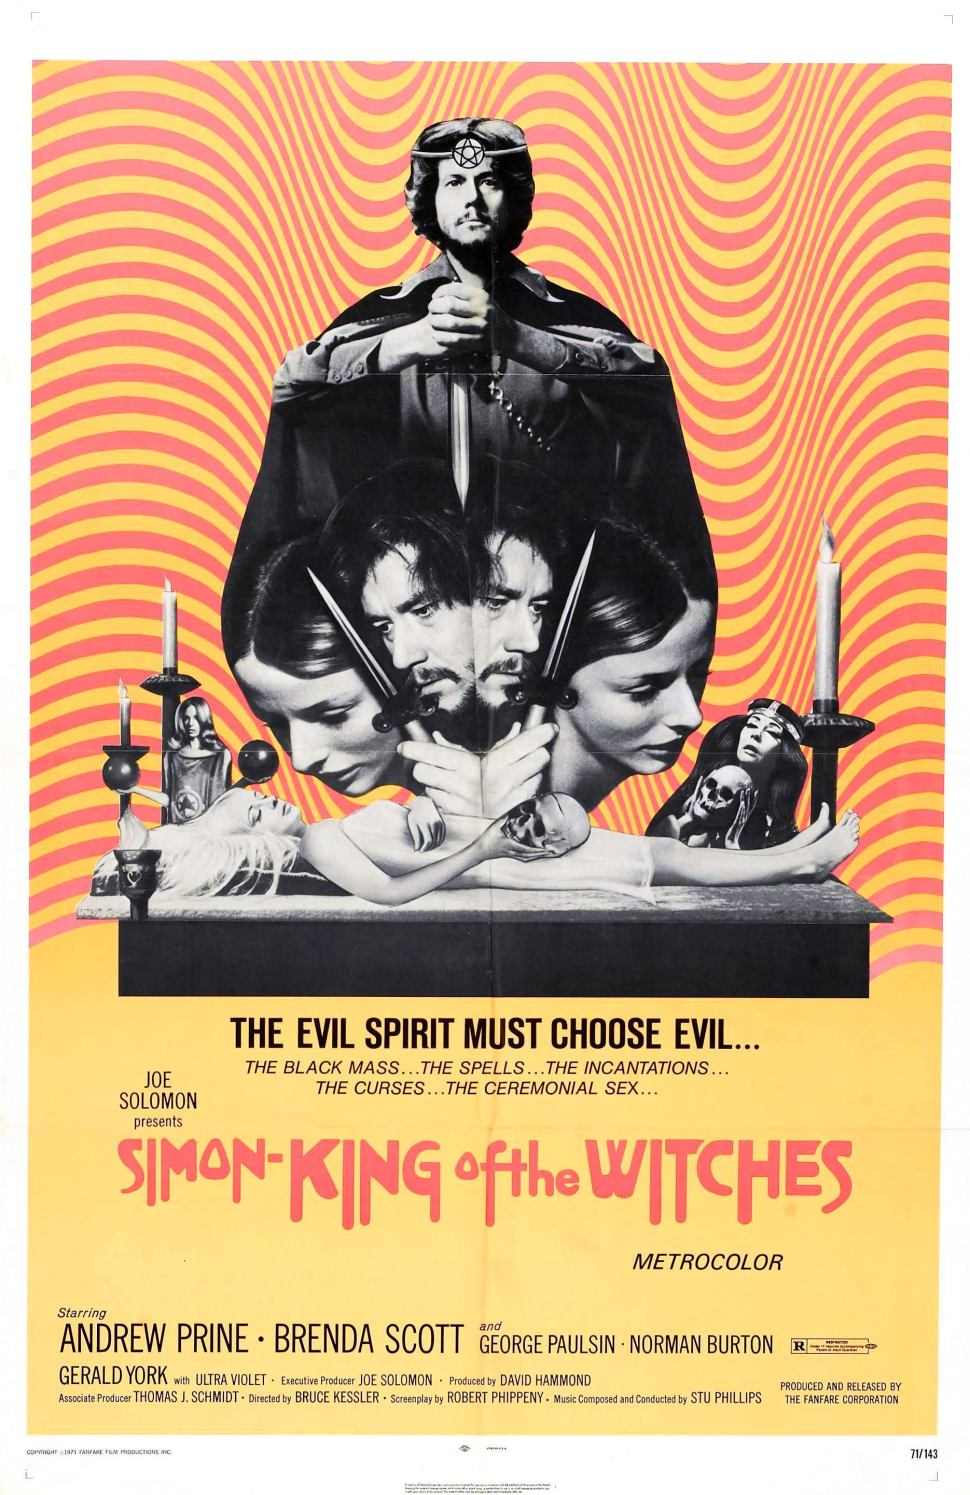 HMM simon king of the witches